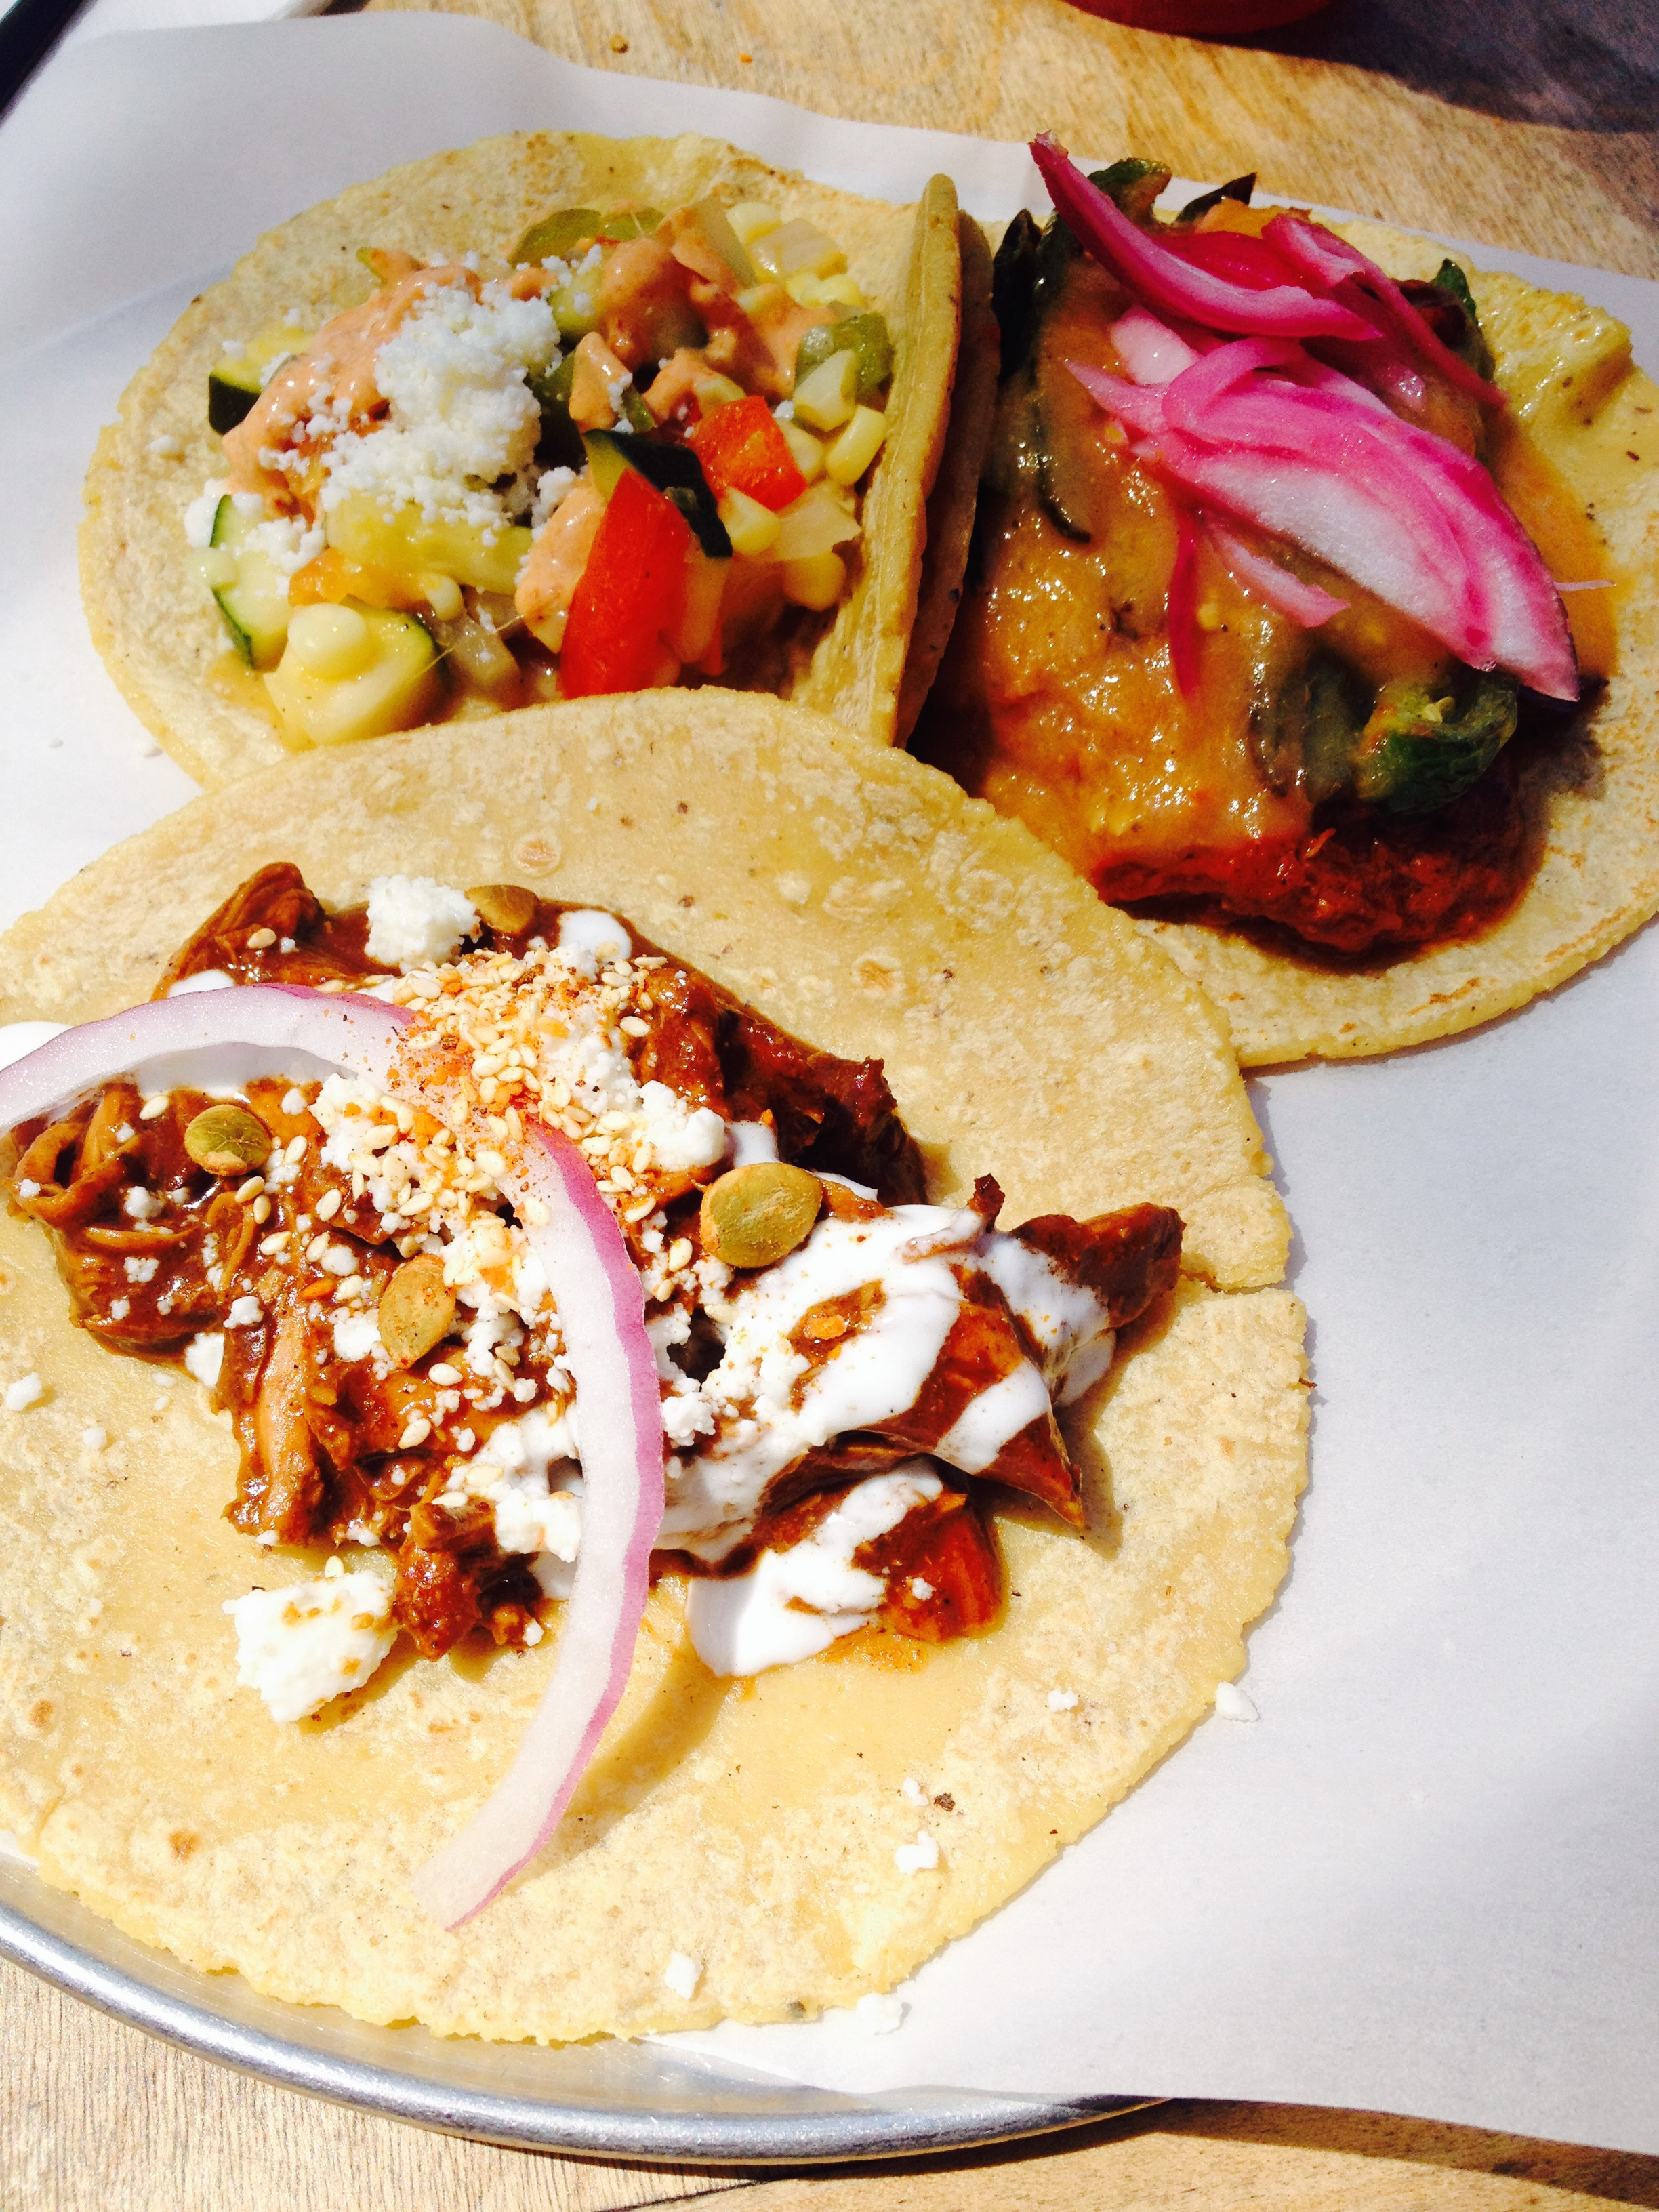 Mole Poblano     (front).    Cochinita Pibil    served at level 10 (it's offered from levels 1-10) with   shredded pork cooked in achiote peppers on top of black beans, served with pickled onions and habanero chilies.    Calabasitas    with squash, tomatoes, bell peppers, corn and onions. Served with queso fresco and a mild chipotle-sour cream.